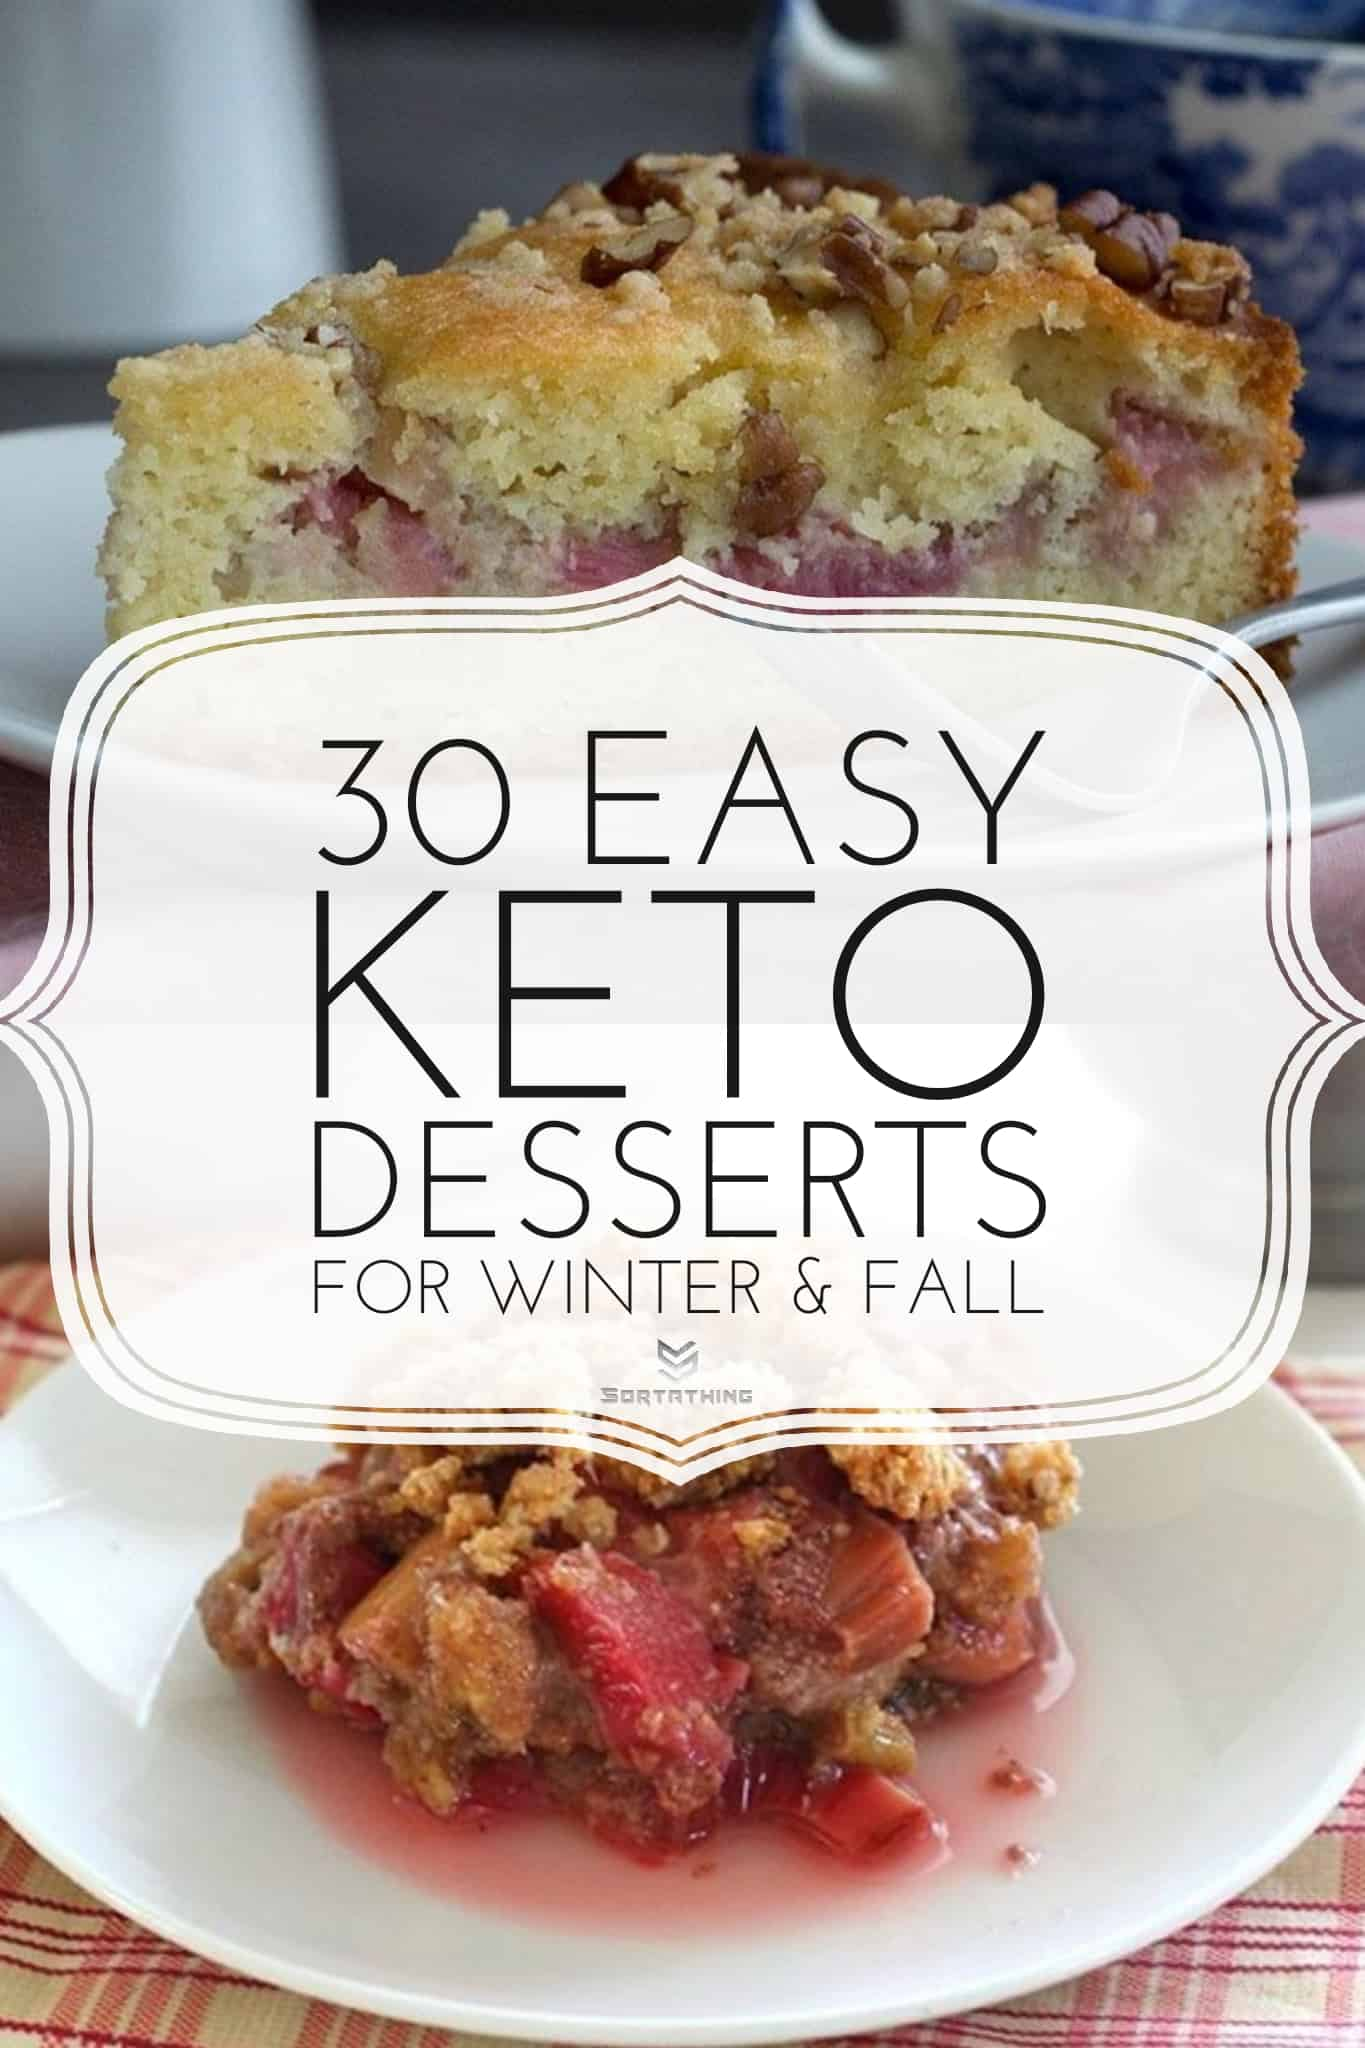 Keto Rhubarb Coffee Cake and Low Carb & Gluten-Free Rhubarb Crumble